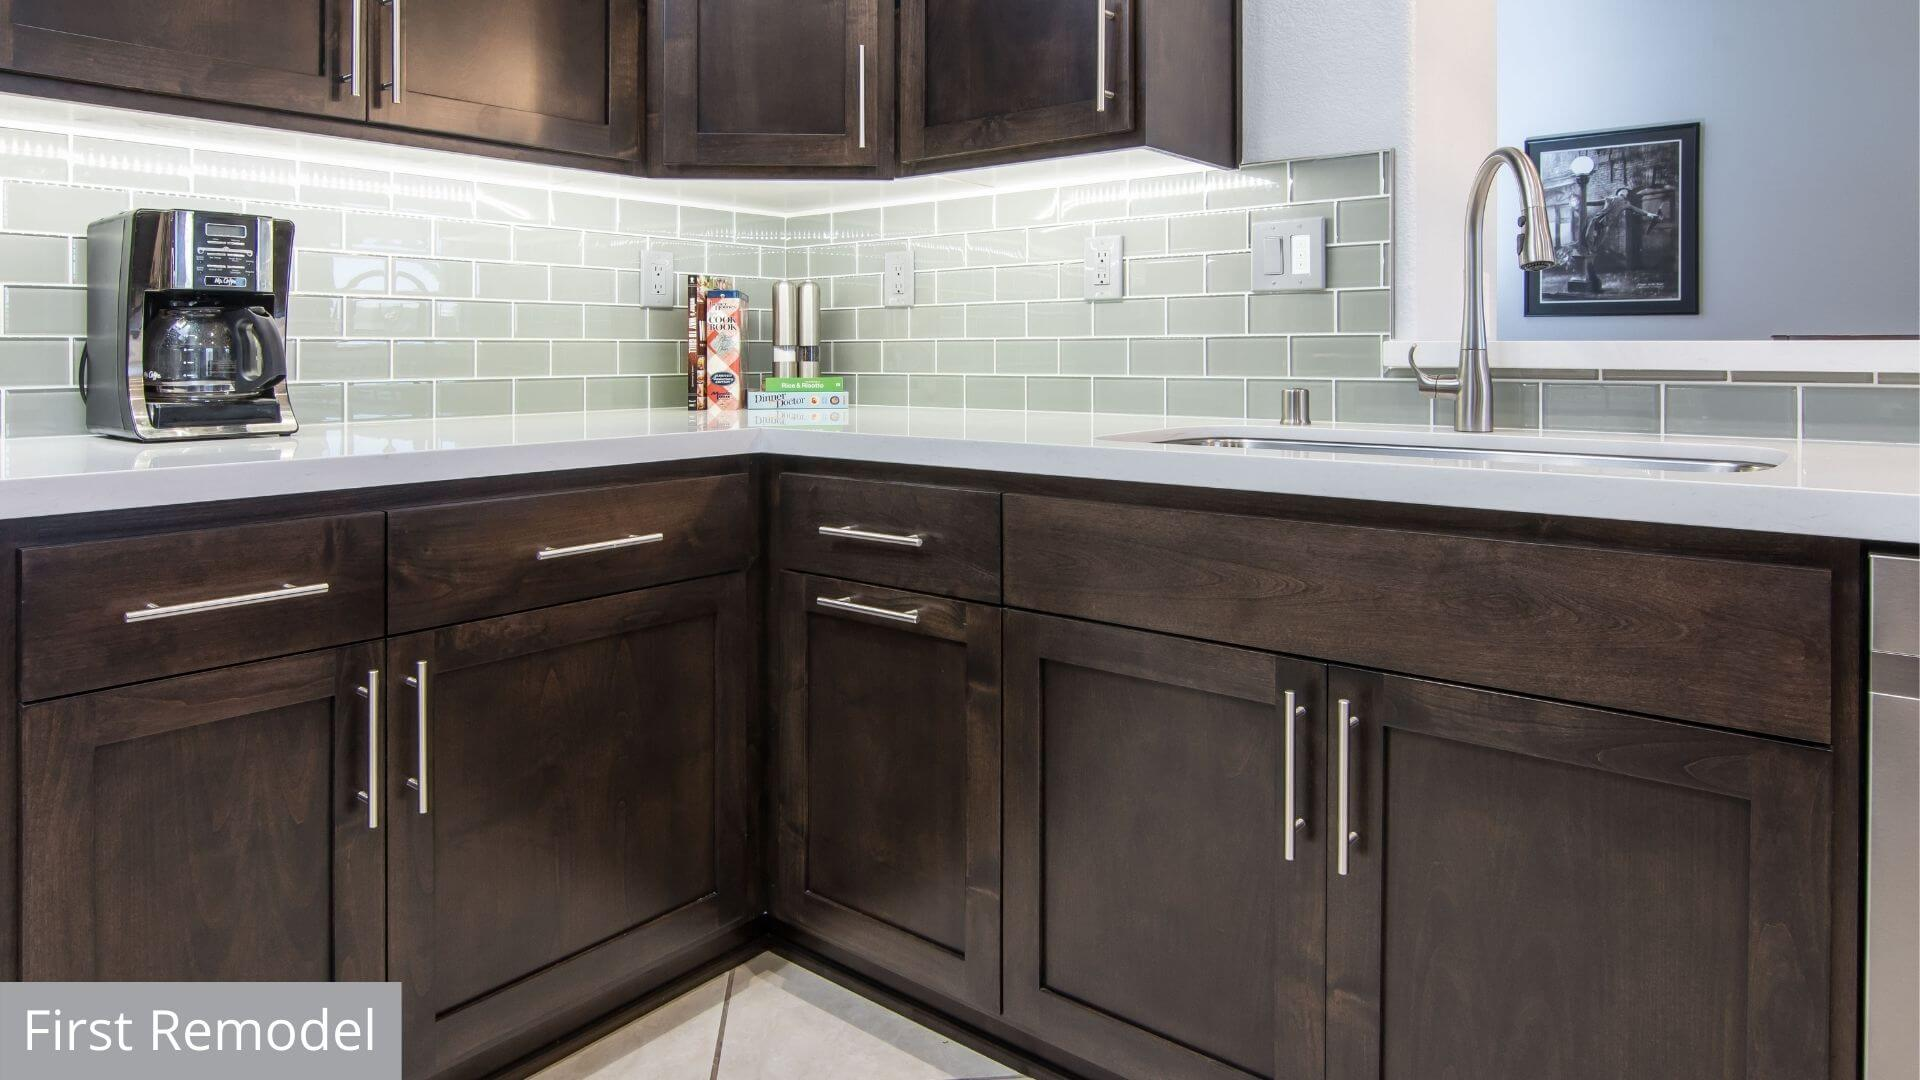 Lenton_Company_First_Remodel_7